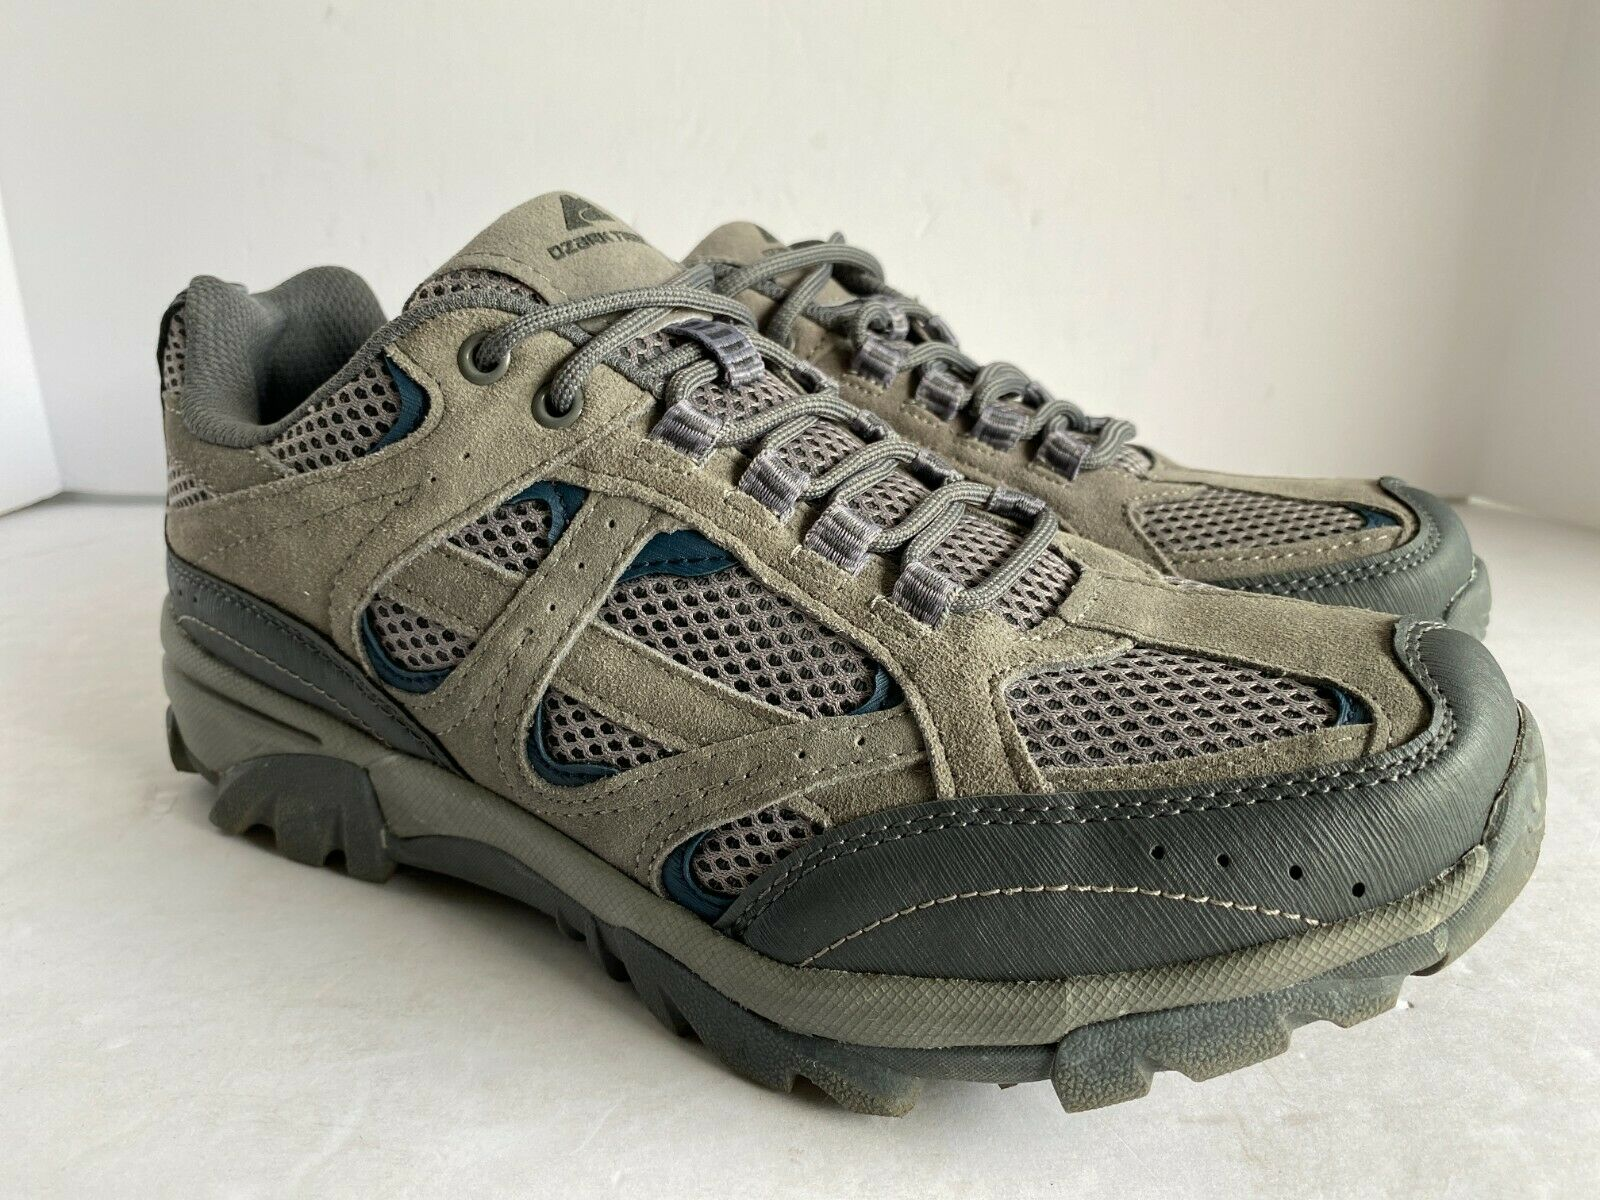 Size 9.5 Vented Low Hiking Shoes